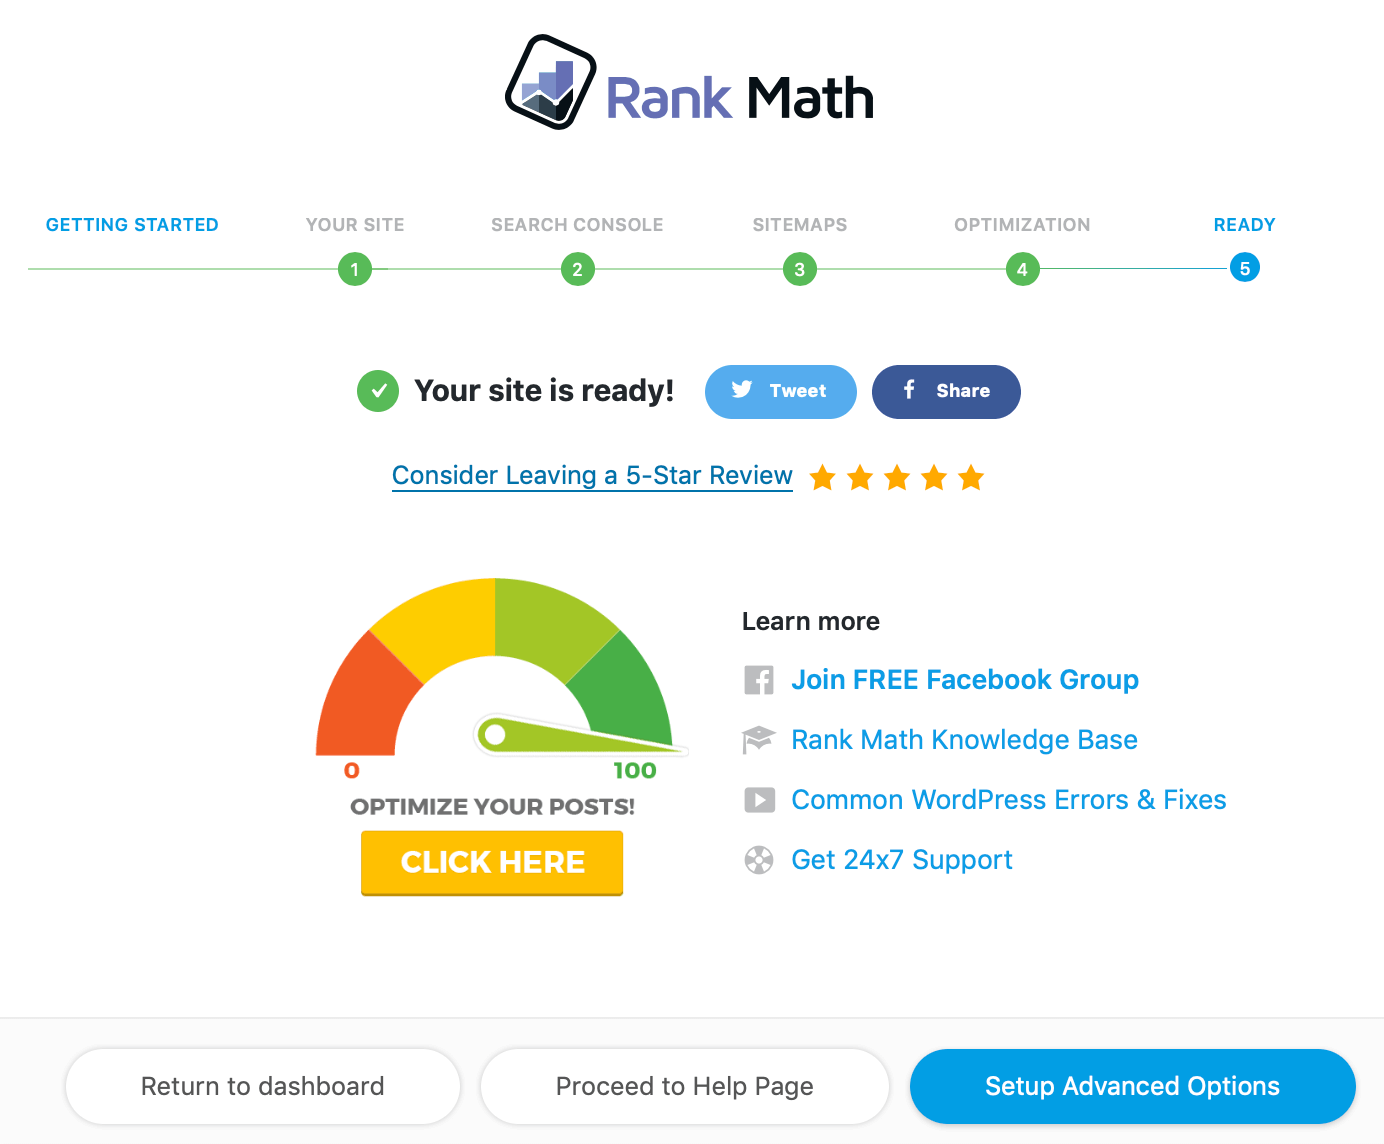 rank math - your site is ready set up advanced options